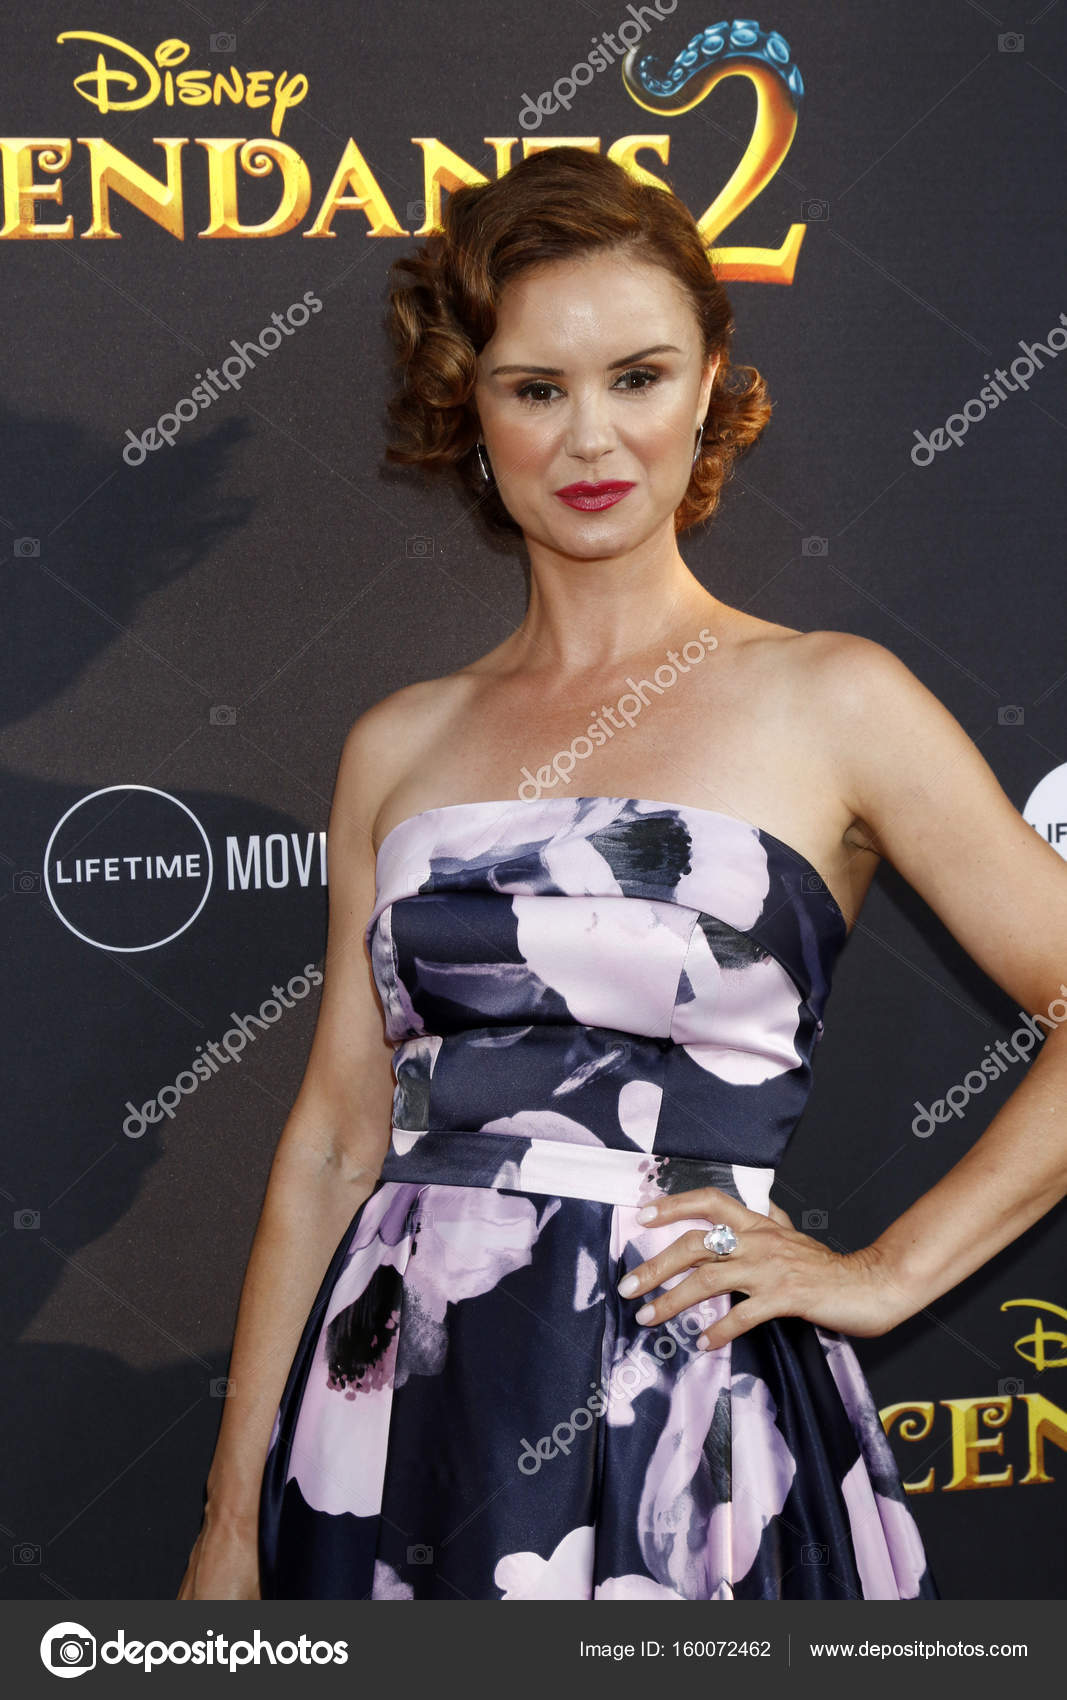 Keegan connor tracy opinion you